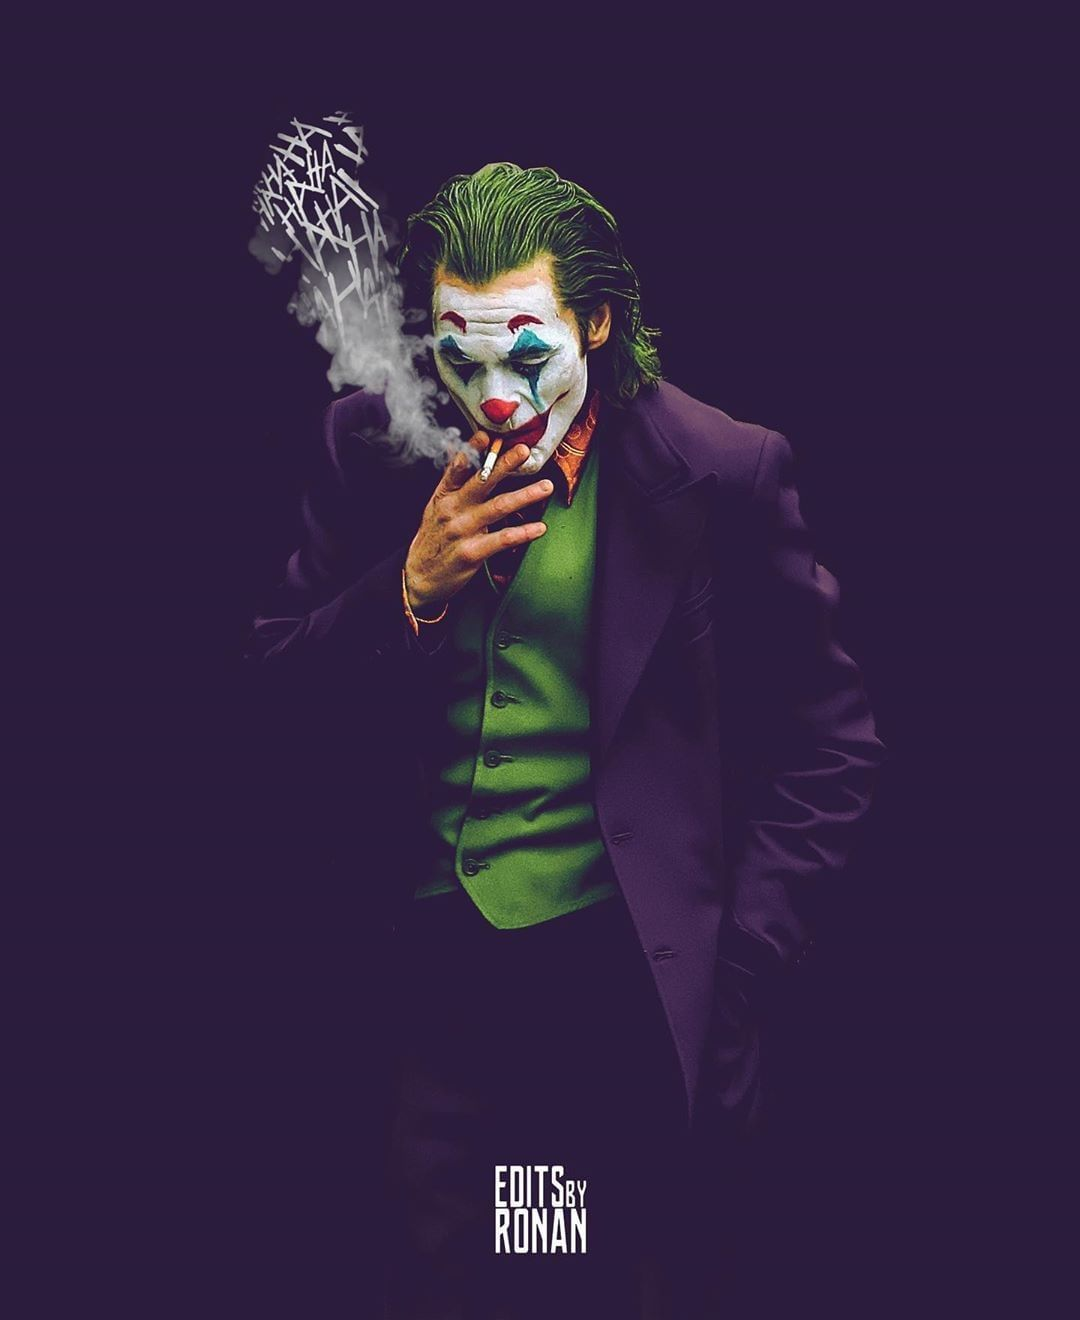 Joker By Editsbyronan Jokermovie Joker Thejoker Joaquinphoenix Joker Iphone Wallpaper Joker Pics Joker Images